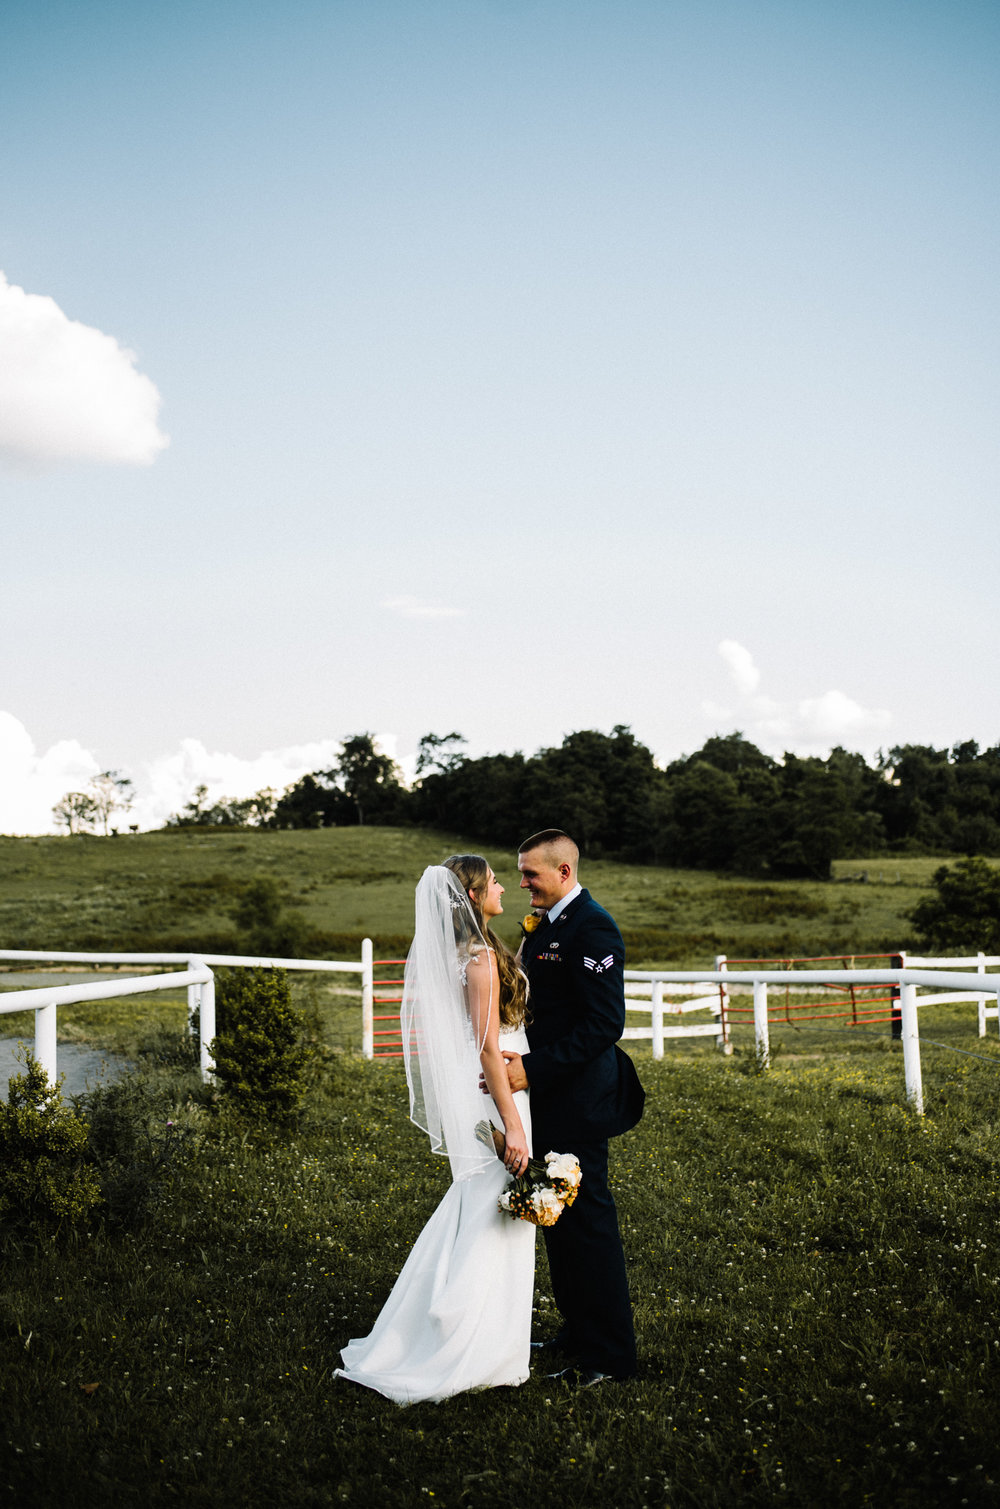 Martinsville West Virginia Horse Barn Rustic Wedding White Sails Creative Photography_51.JPG